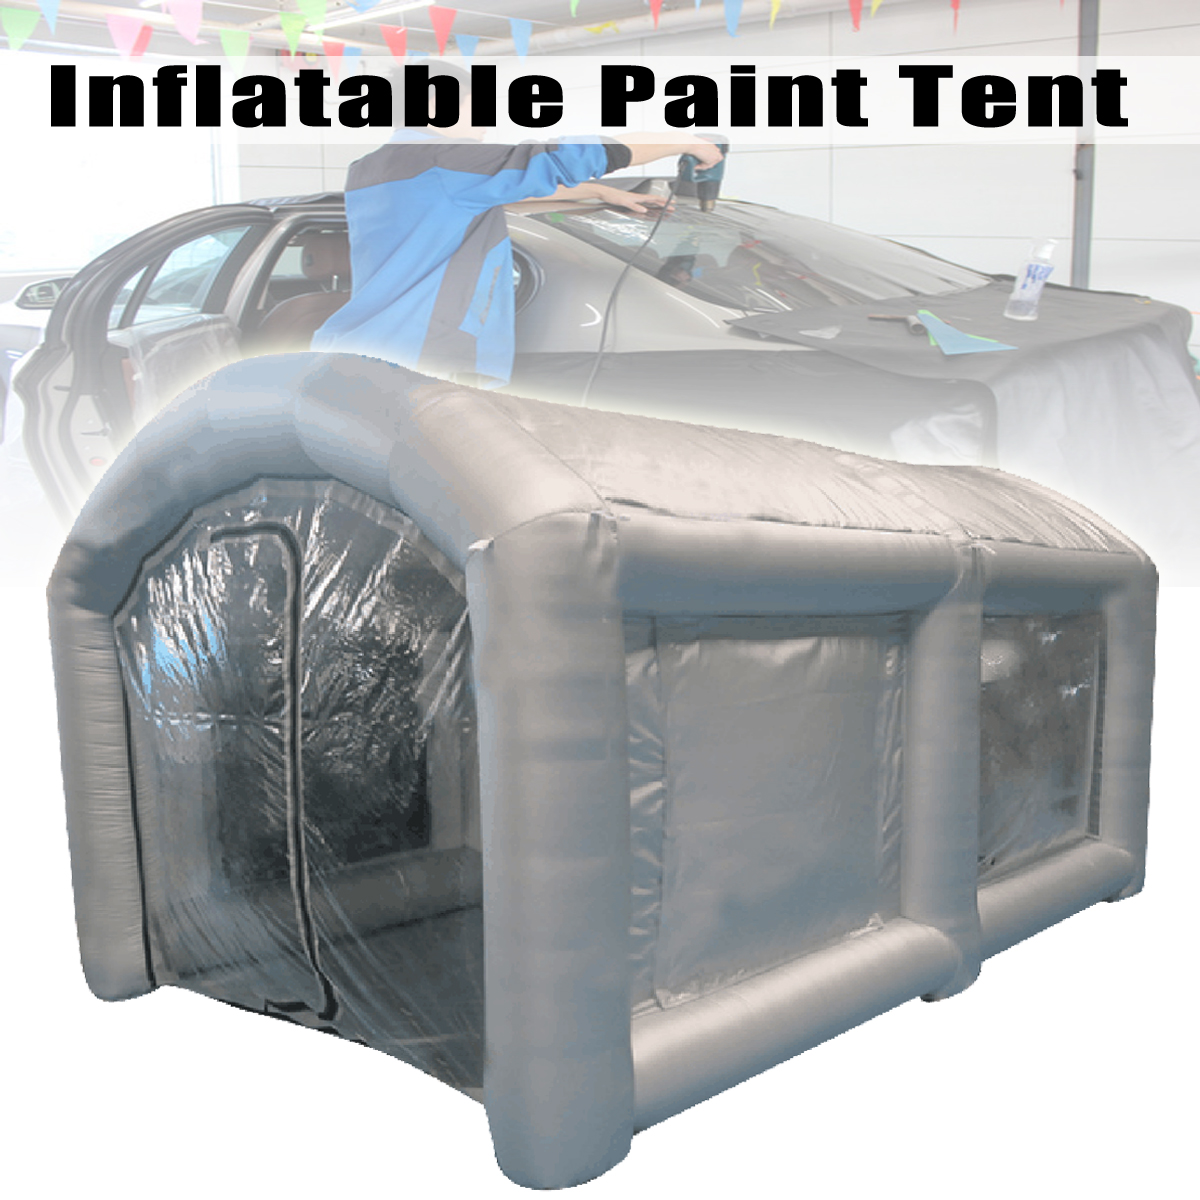 все цены на Outdoor Portable 4x2.5x2.2M Inflatable Spray Booth Tents Inflatable Paint booth Car Parking Tent Workstation with Blower